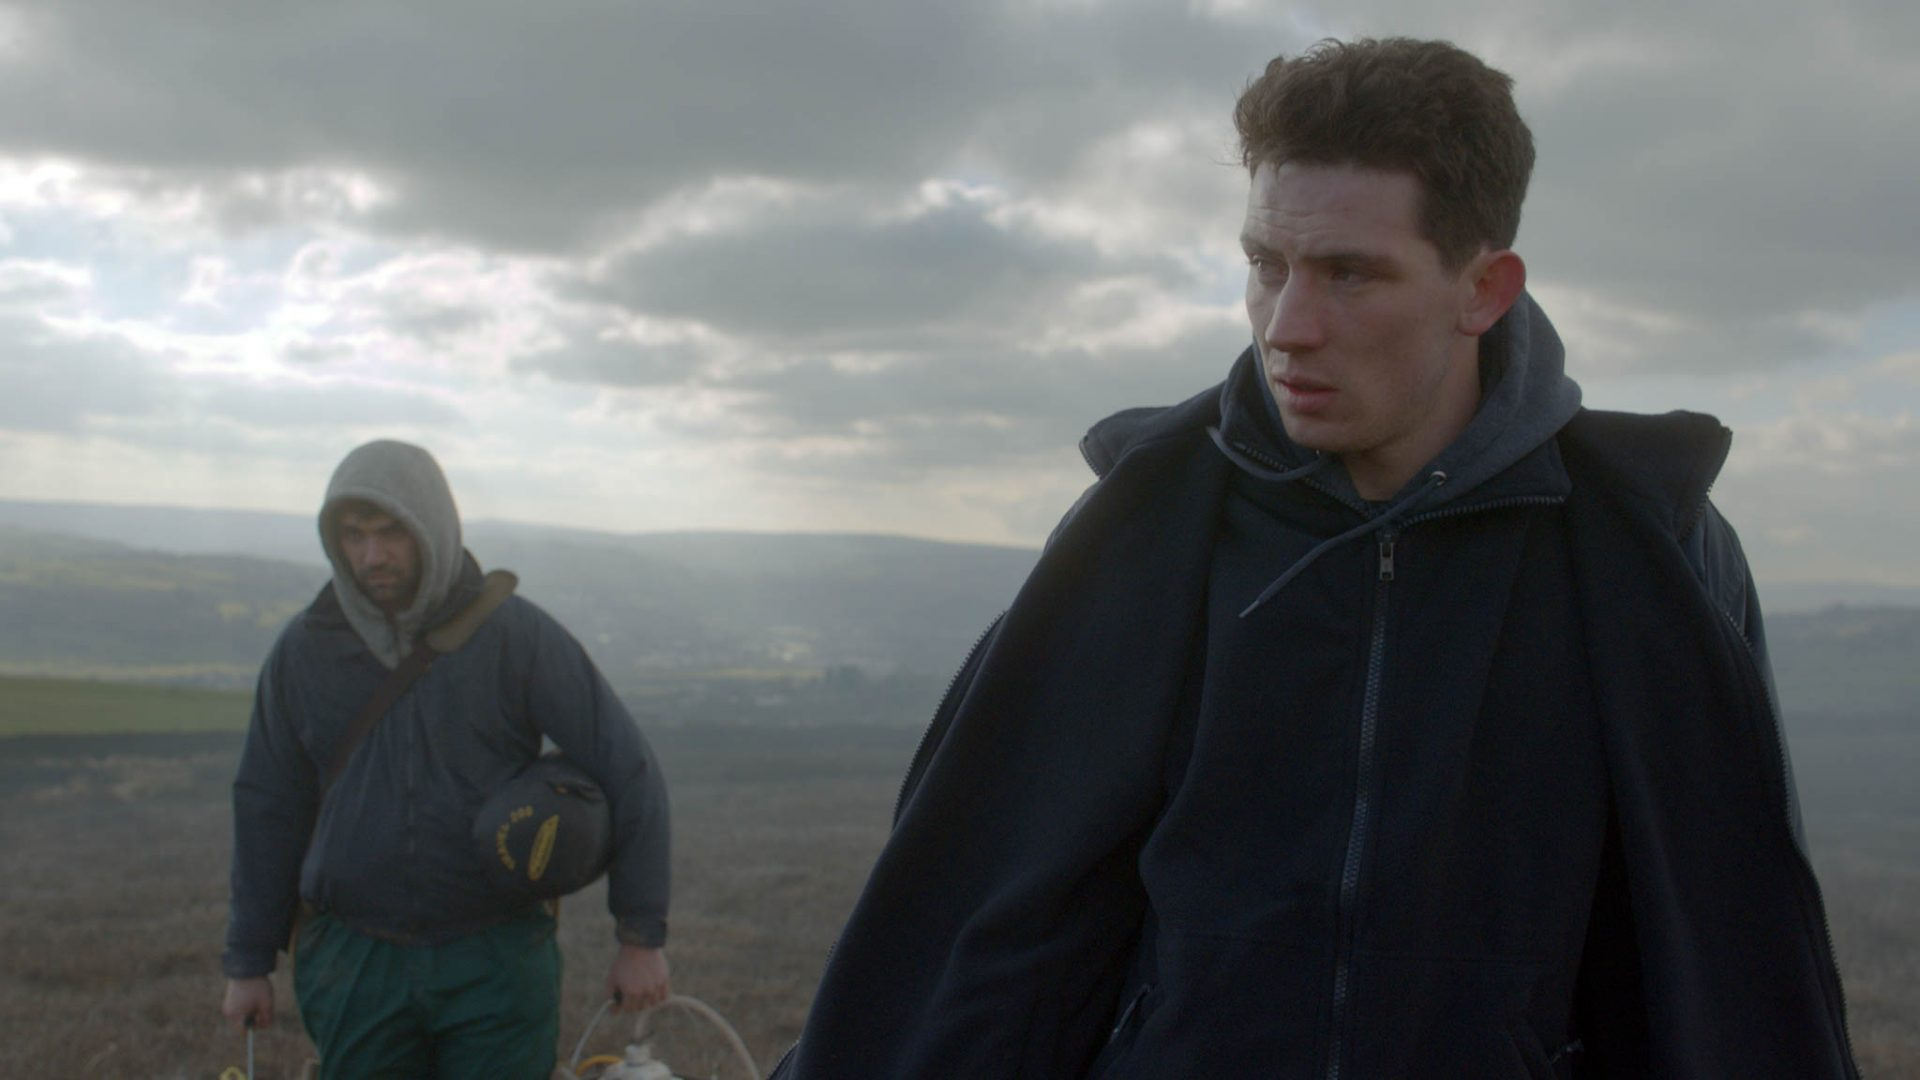 Josh O'Connor and Alec Secareanu appear in God's Own Country by Francis Lee, an official selection of the World Cinema Dramatic Competition at the 2017 Sundance Film Festival. Courtesy of Sundance Institute.